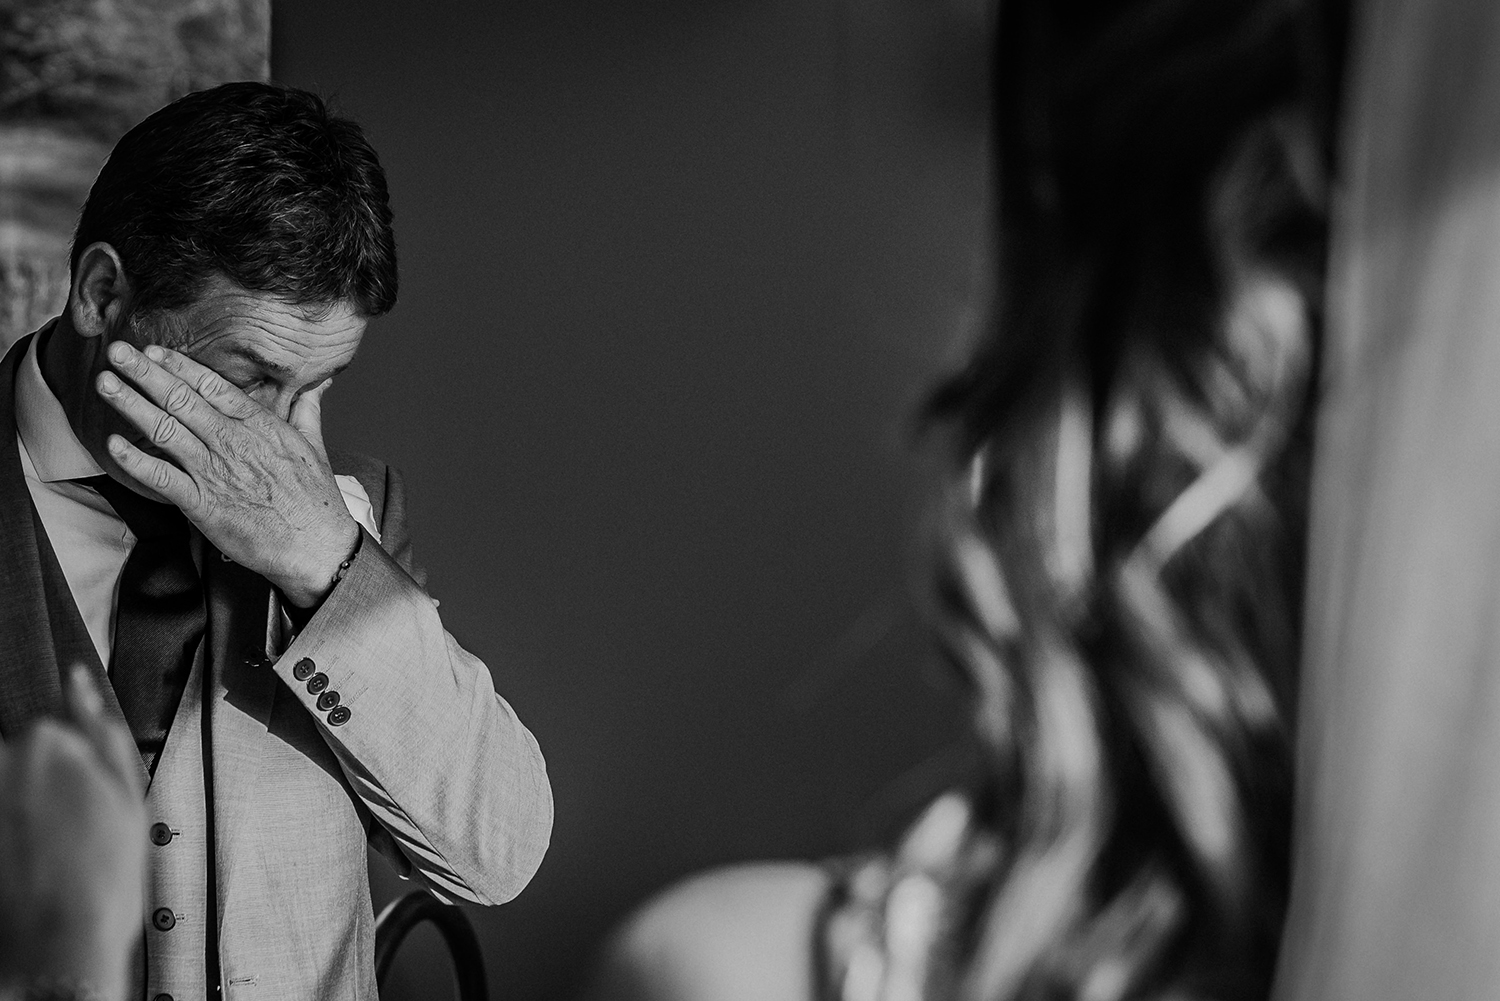 Bw photo. Dad wipes his eyes as he sees his stunning daughter